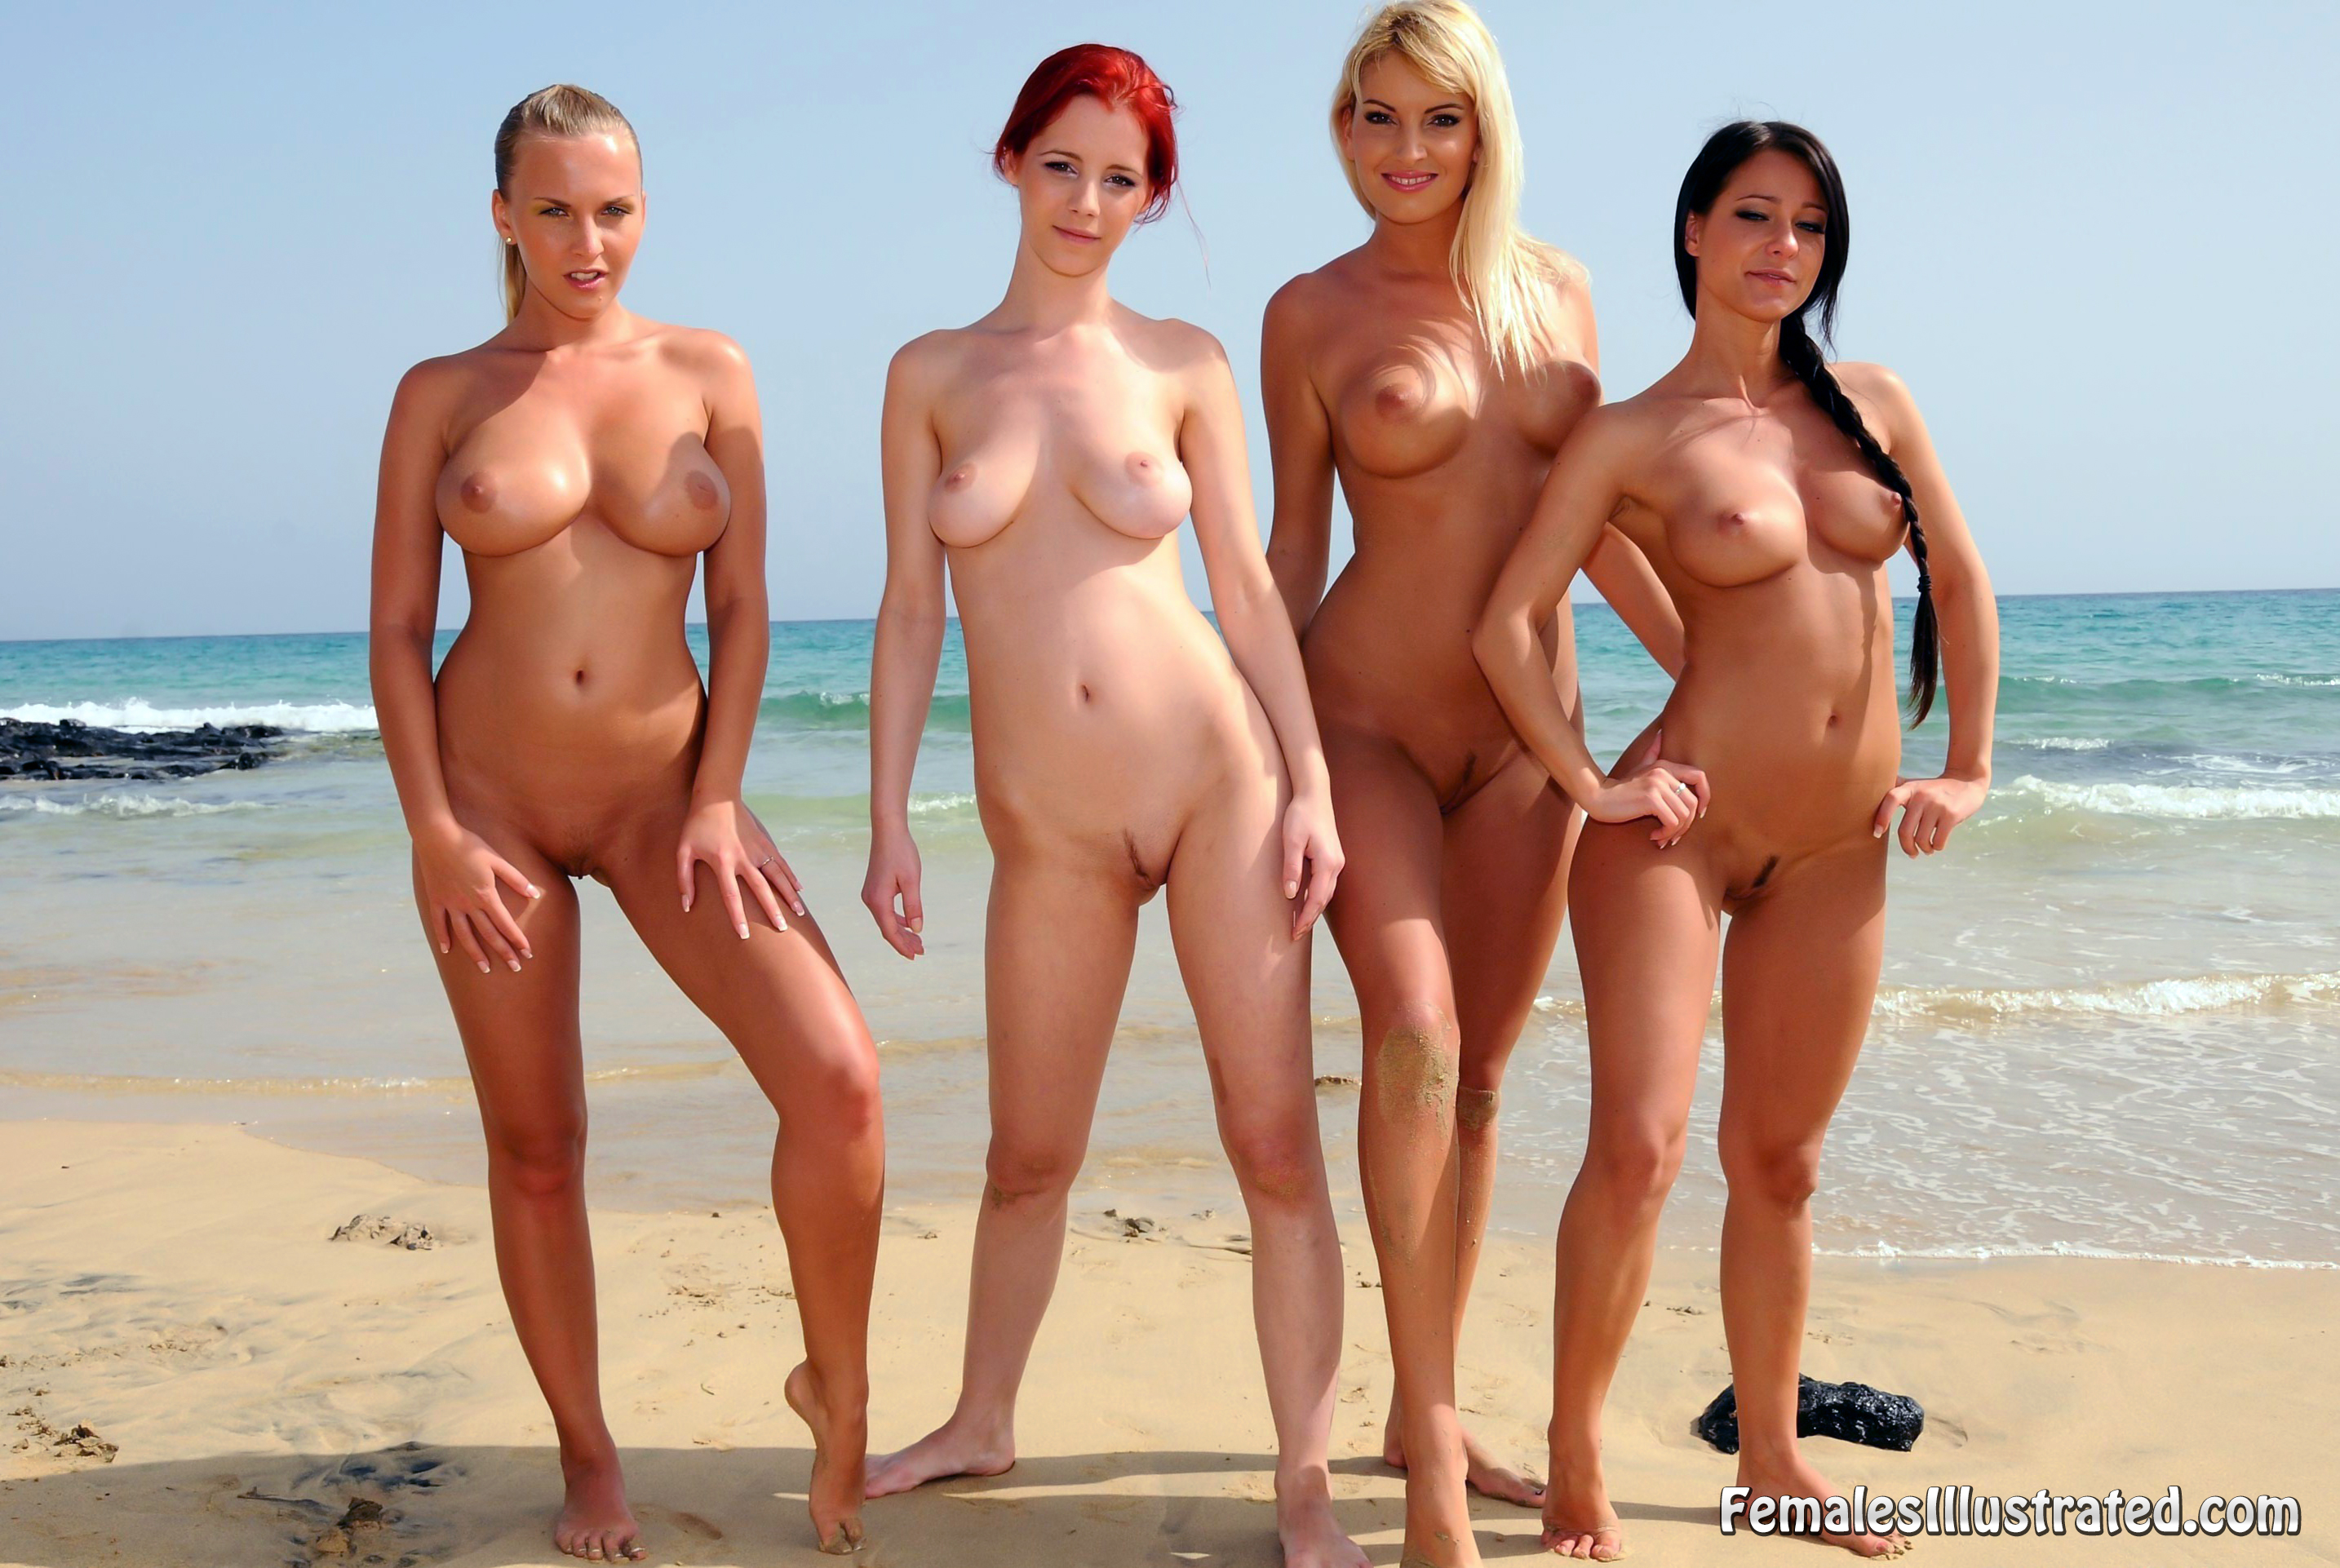 Hd naked girls groups nude pussy